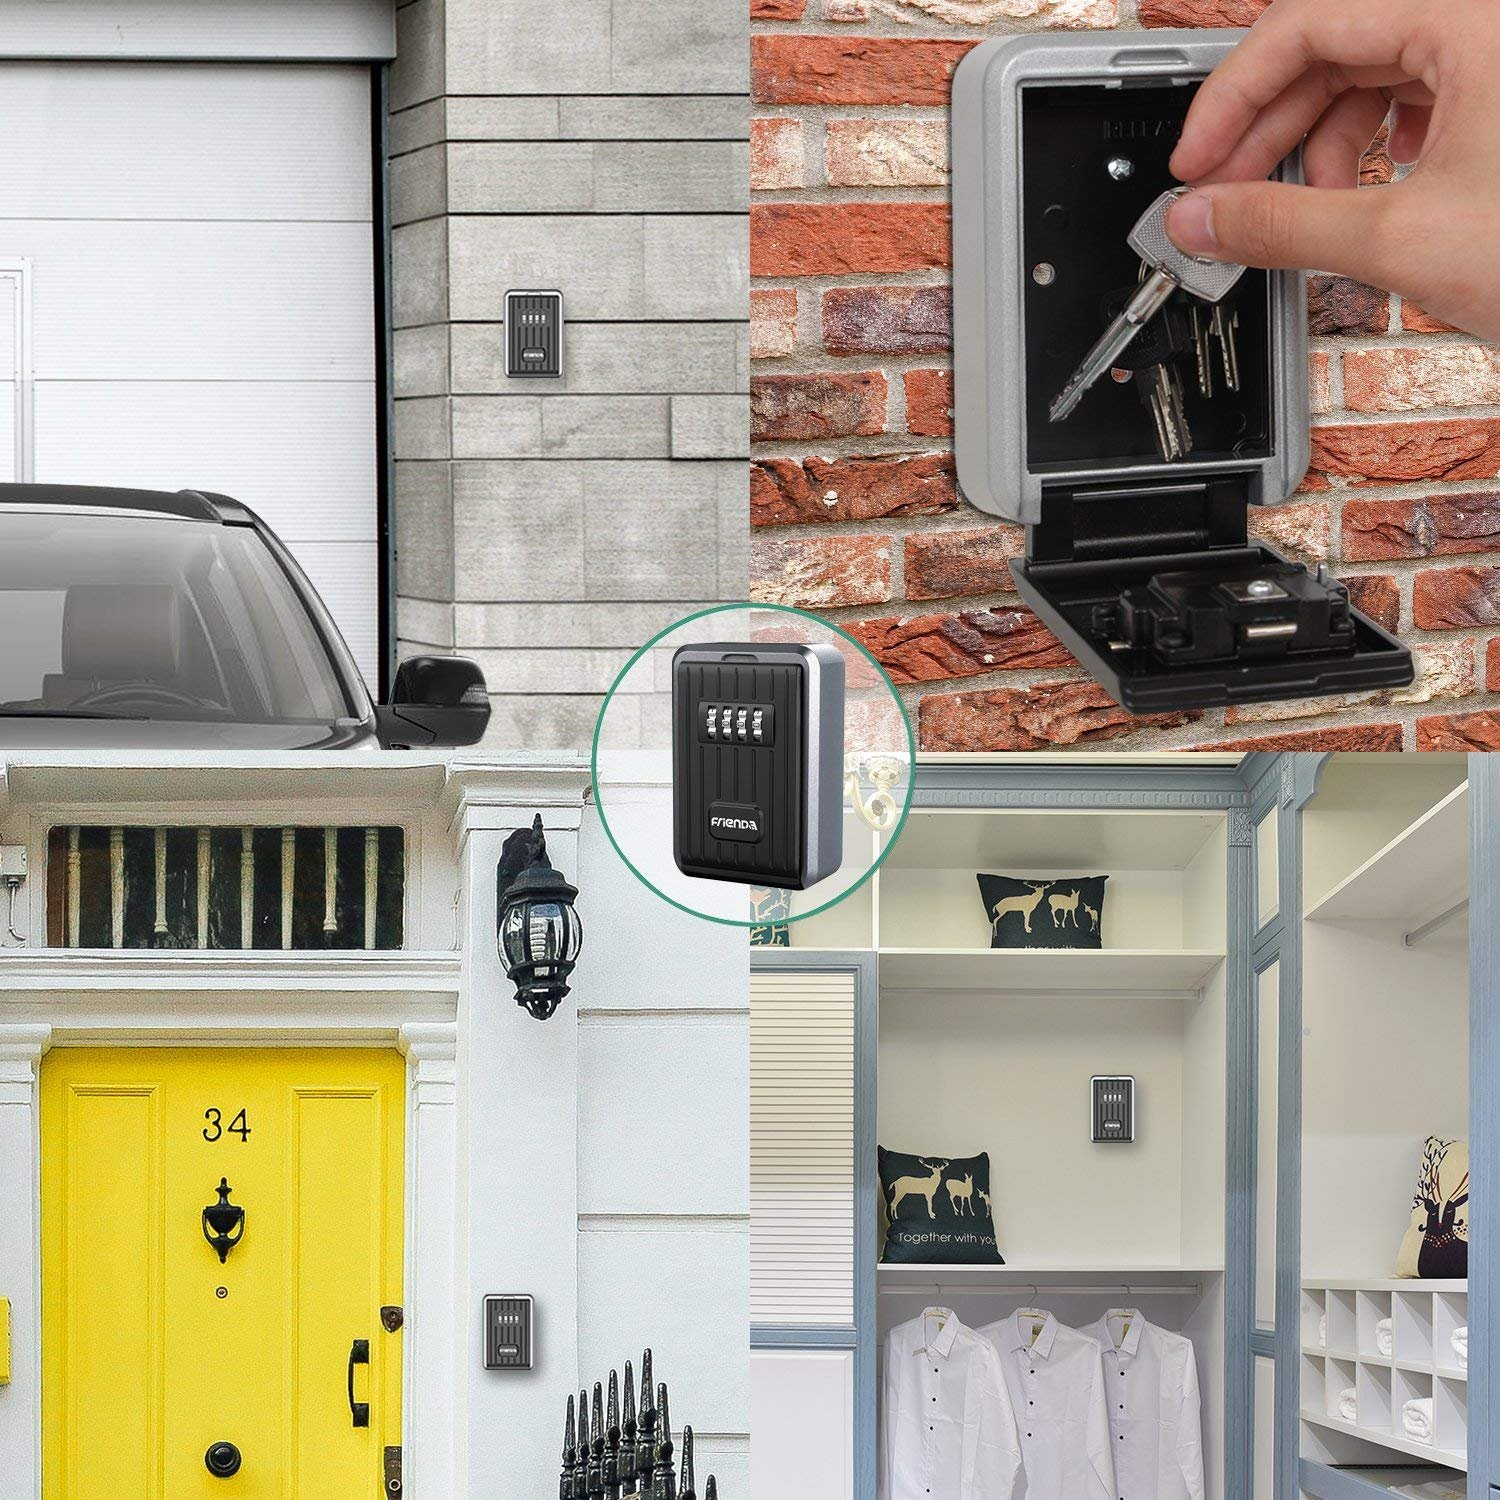 Hide Key Safe Lock Box ZHIQII Wall Mount Push Button Lock Stores up to 6 Keys on doorknob 4 Digit Combination Exterior Outdoor Waterproof Secure Box Keys Holder for Home/House use Key Storage Lockbox by ZHIQII (Image #6)